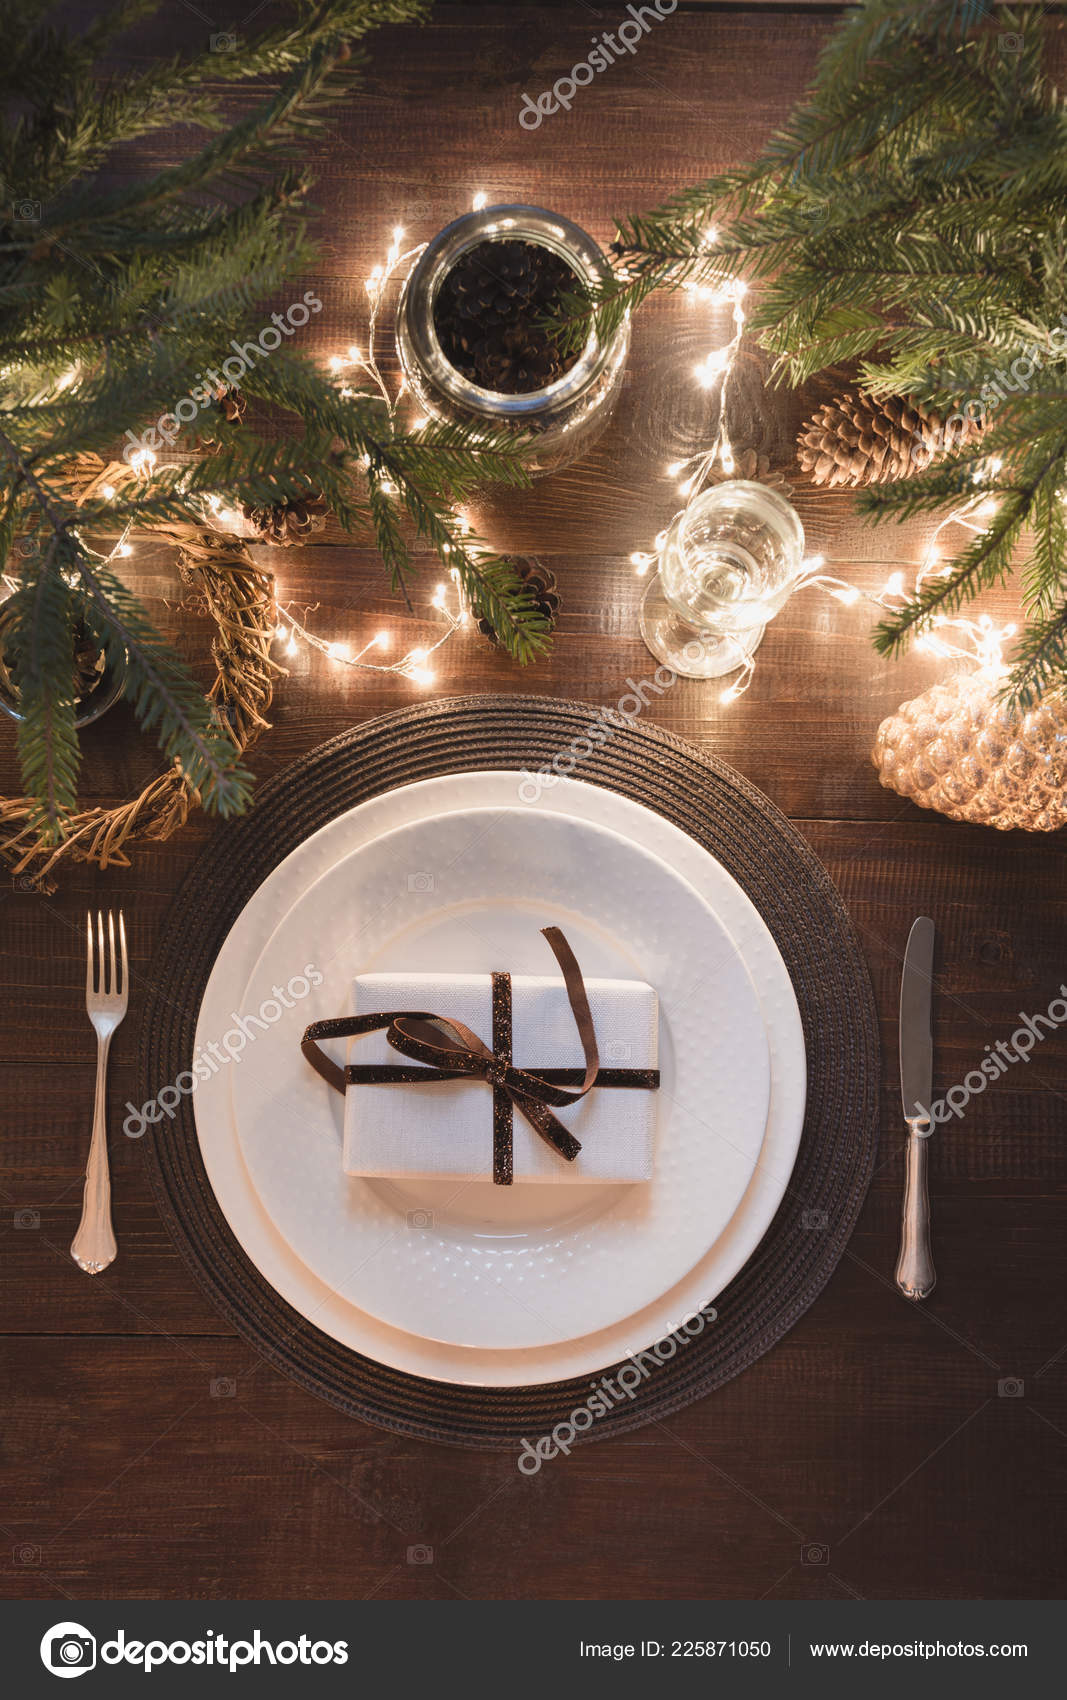 Christmas Table Setting With Silverware Garland And Evergreen Decor